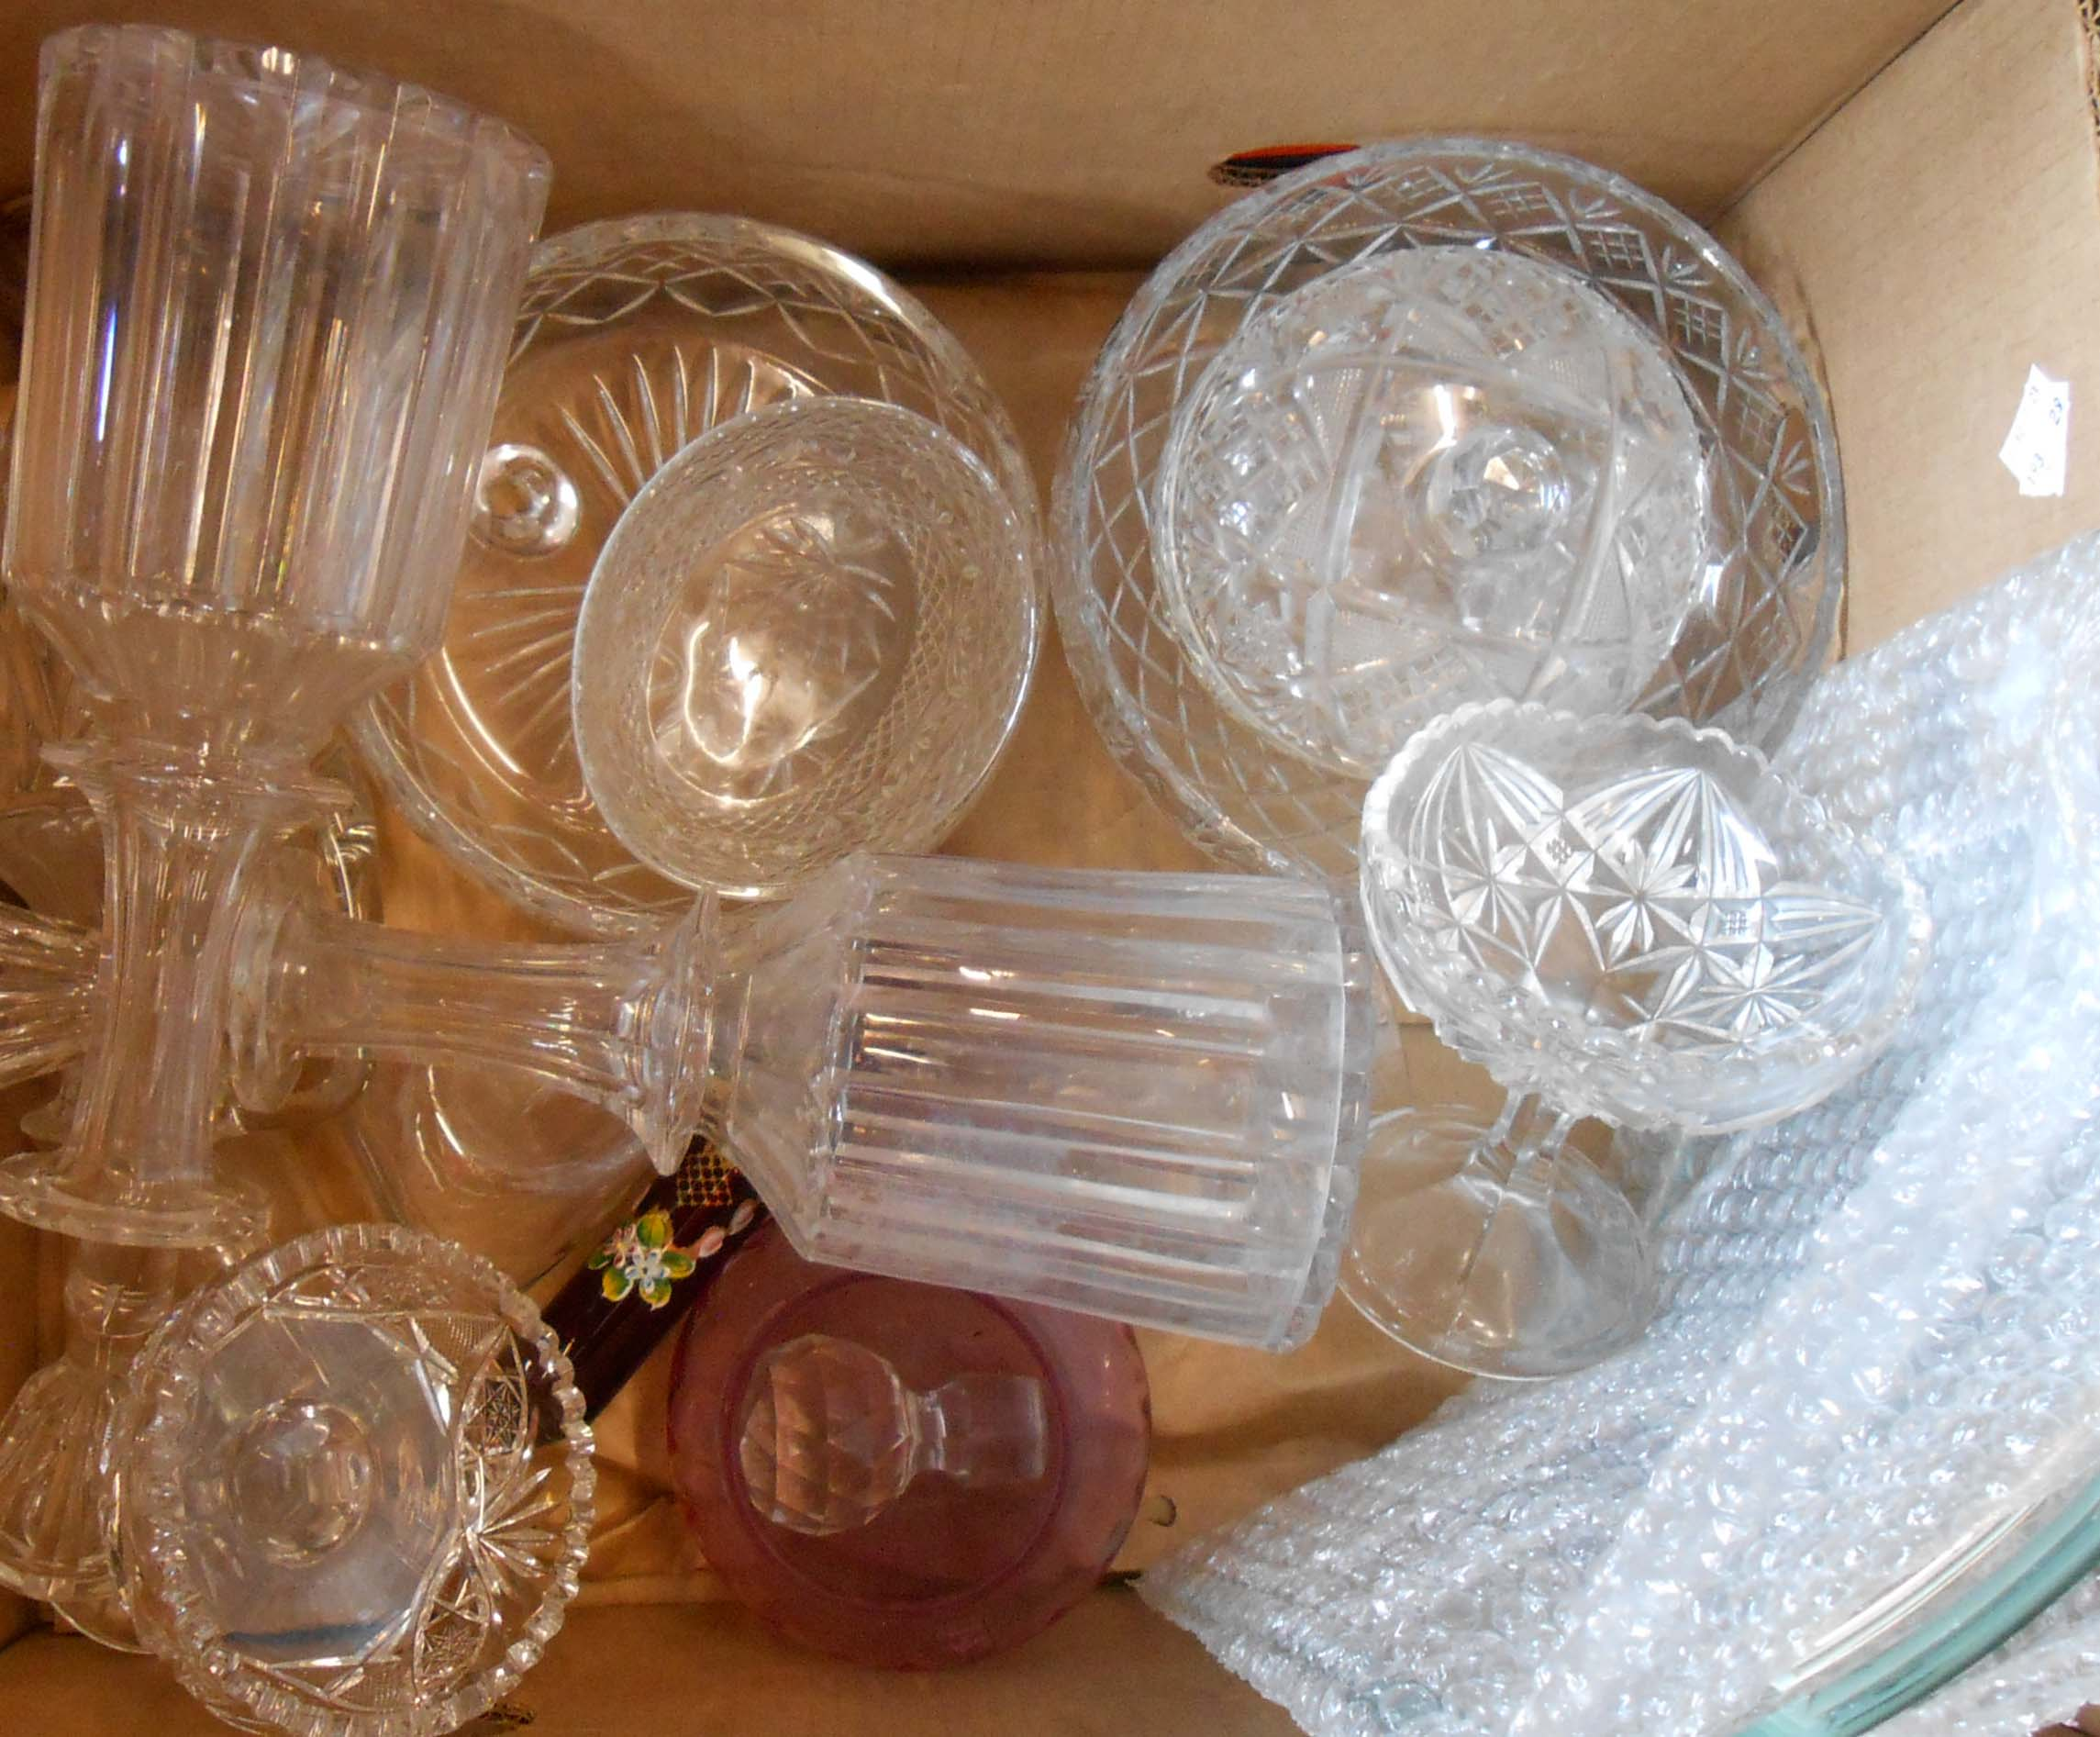 A box containing a quantity of glassware including pair of decanters, fruit bowls, picture frame,